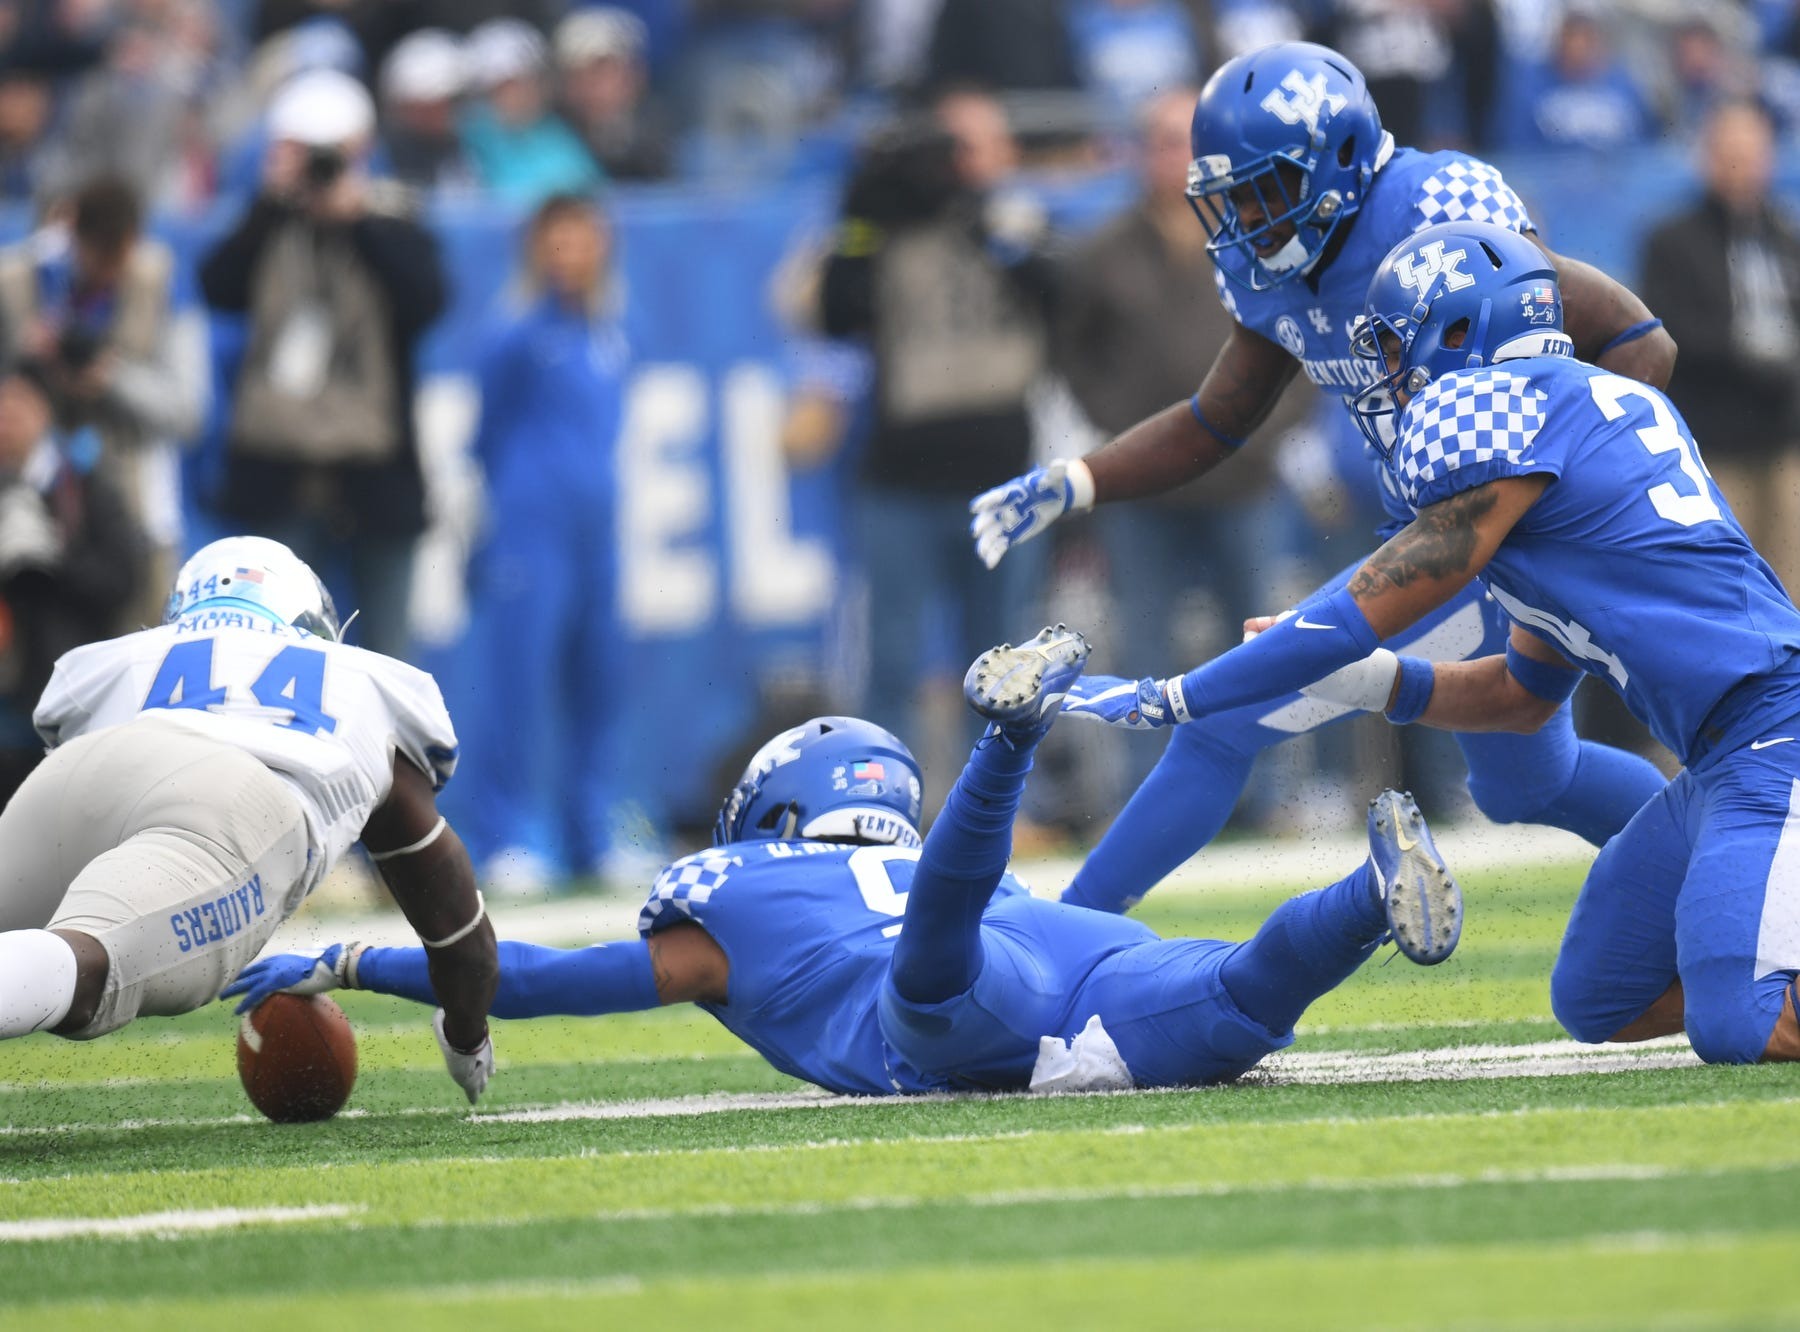 UK FS Davonte Robinson recovers a fumble during the University of Kentucky football game against Middle Tennessee at Kroger Field in Lexington, Kentucky on Saturday, November 17, 2018.